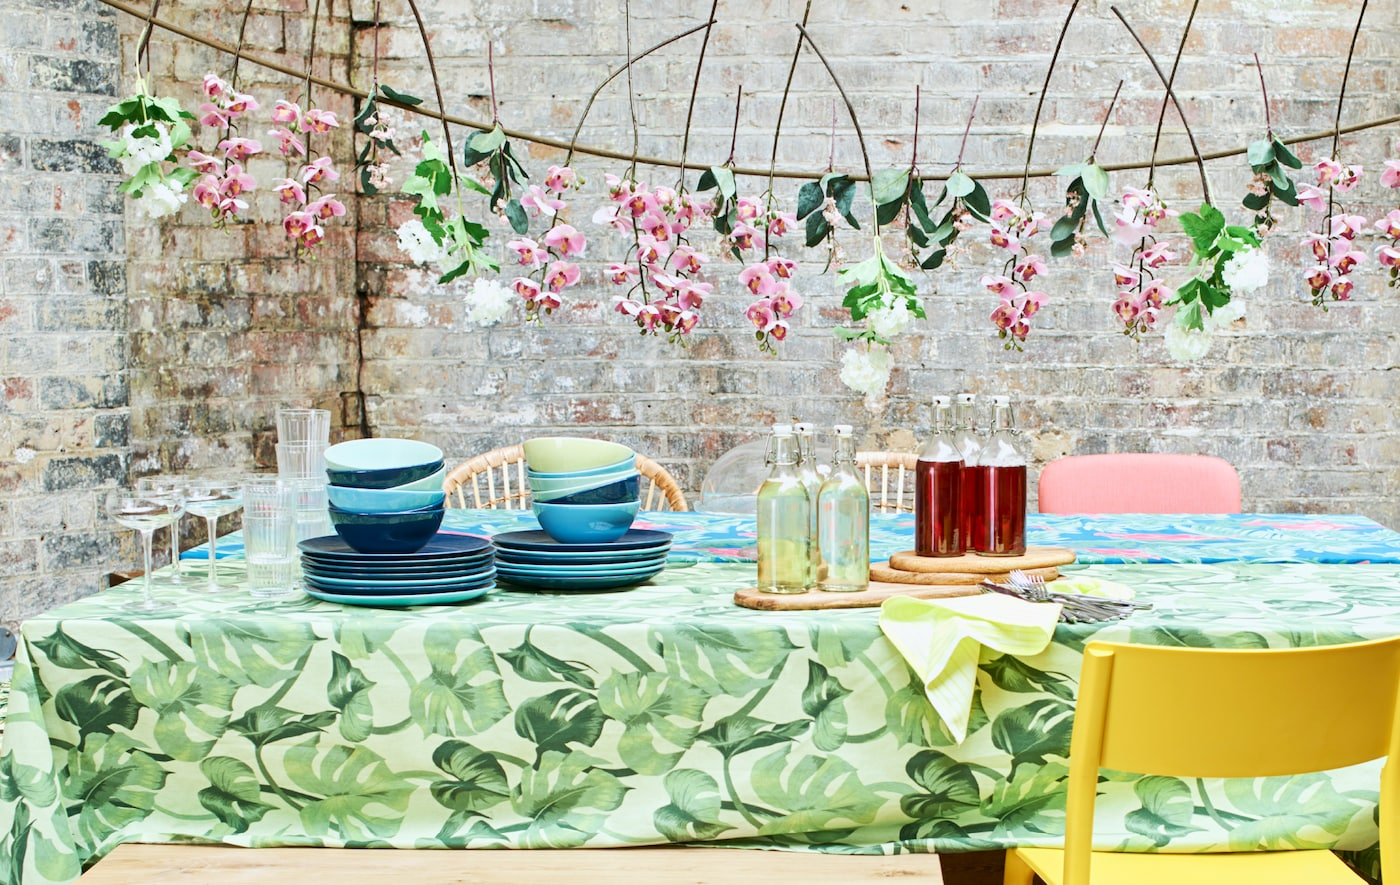 A summer party table with bright tablecloths, piles of blue crockery, mixed chairs and a garland of artificial flowers.